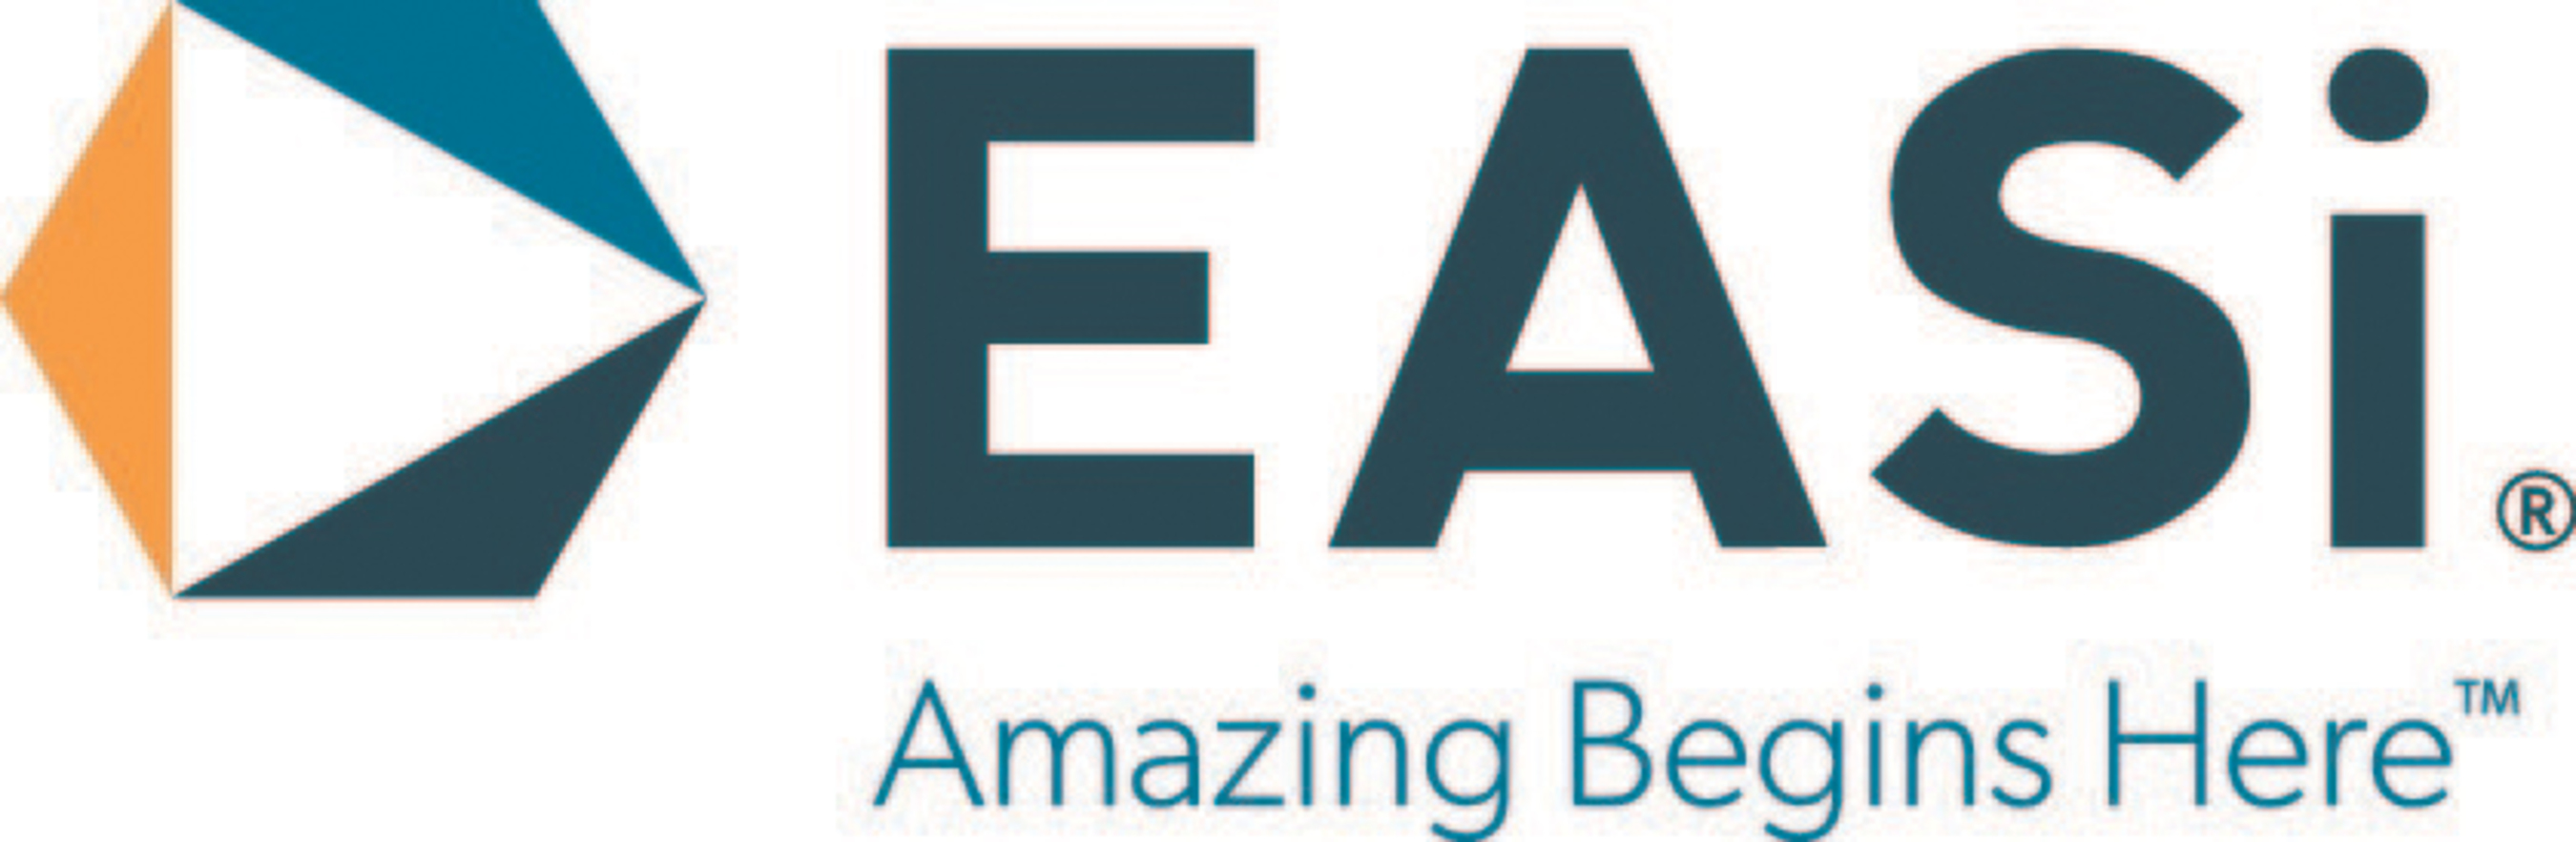 EASi Enhances Branding to Better Reflect its Global, Growing Business